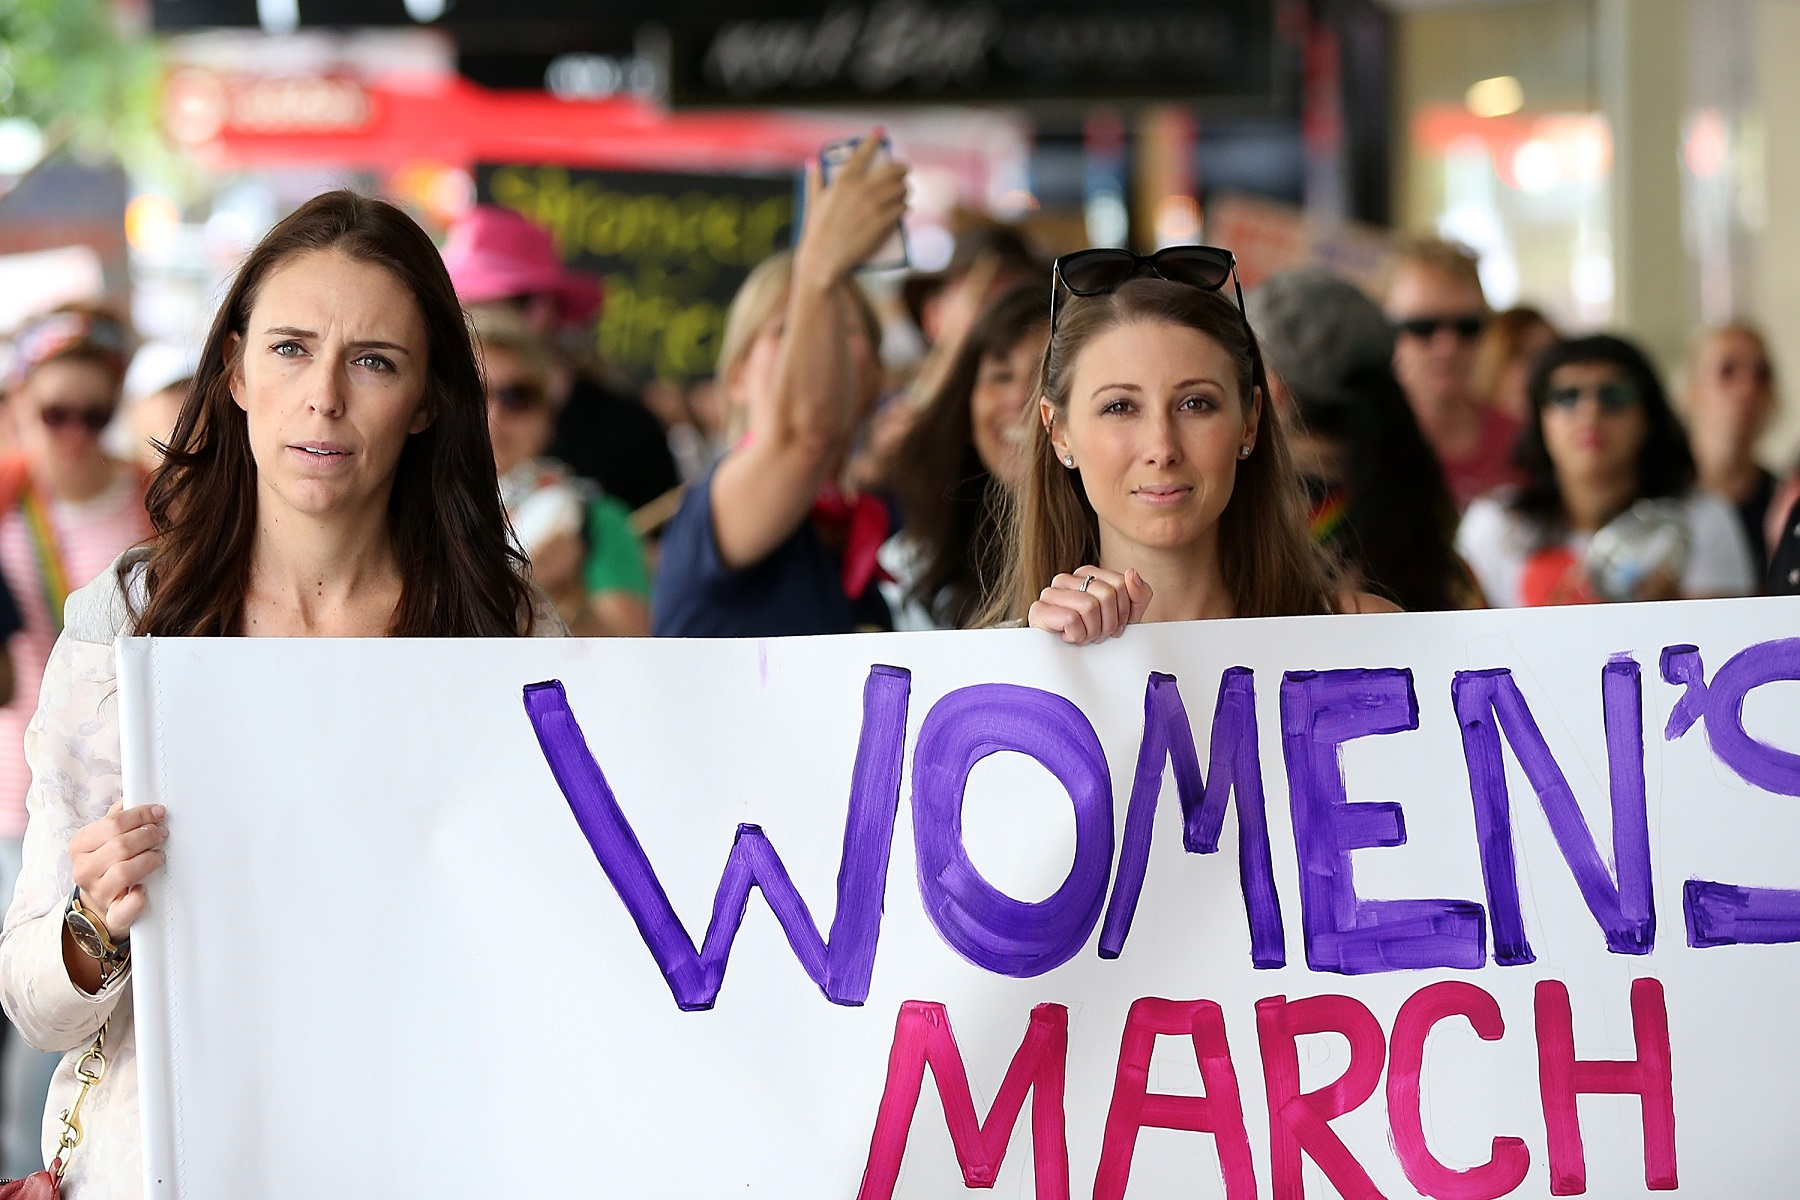 AUCKLAND, NEW ZEALAND - JANUARY 21:  Labour MP Jacinda Ardern (L) and musician, writer, activist Lizzie Marvelly (C) join thousands of people marching up Queen Street on January 21, 2017 in Auckland, New Zealand. The marches in New Zealand were organised to show solidarity with those marching on Washington DC and around the world in defense of women's rights and human rights.  (Photo by Fiona Goodall/Getty Images)